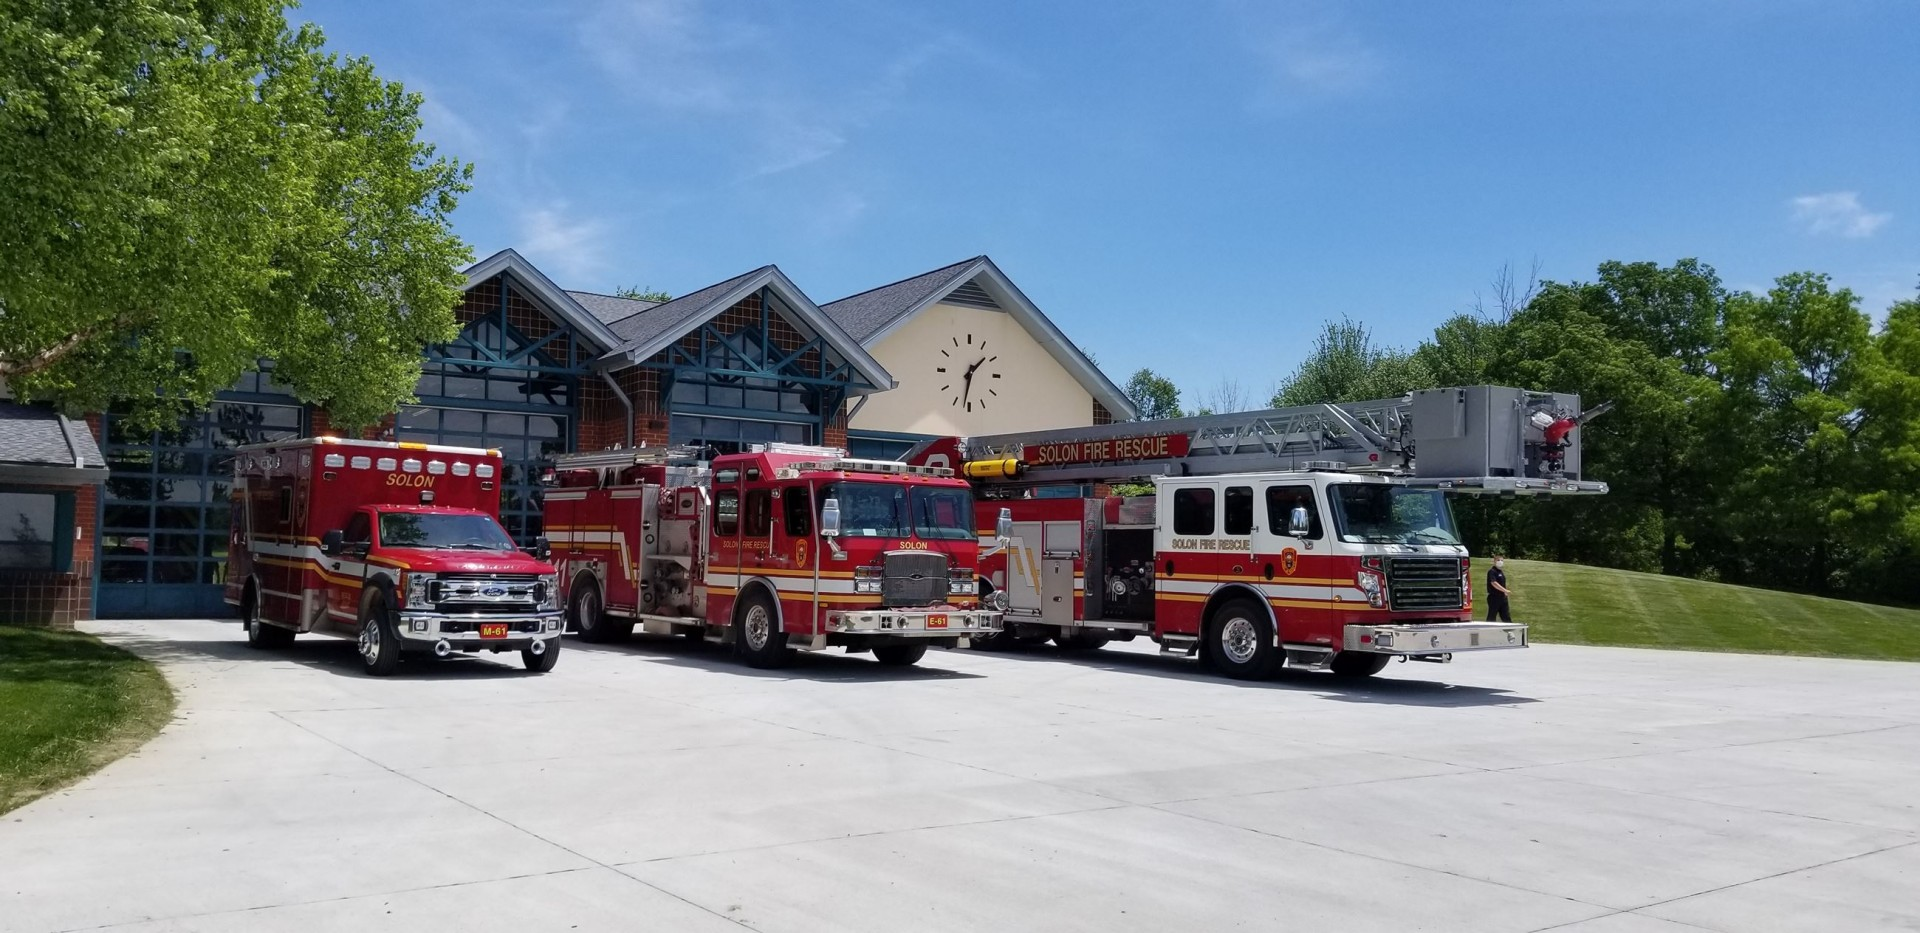 COVID-19 relief dollars helped ignite a renovation project at the Solon (OH) Fire Department.